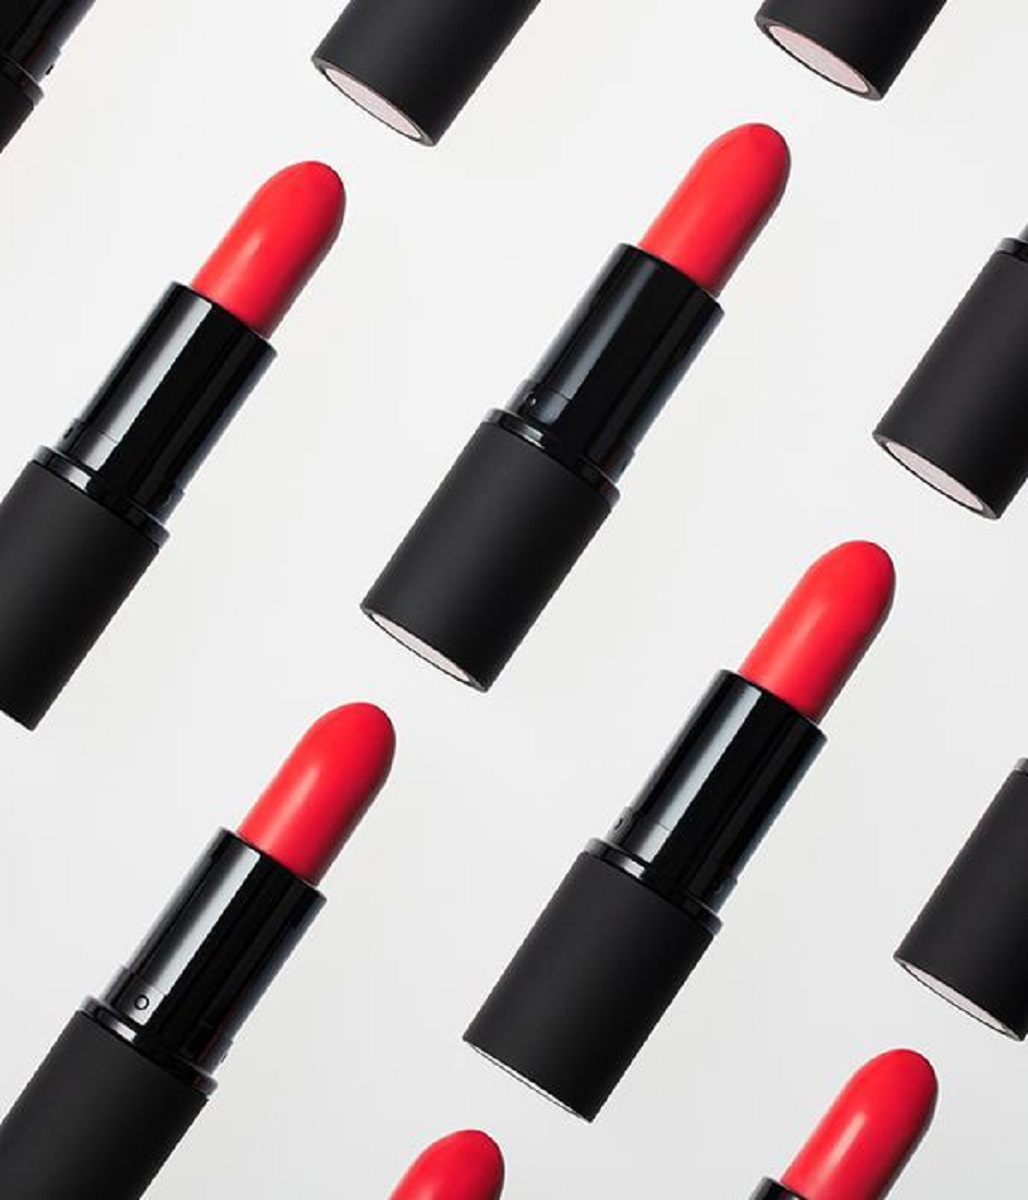 Antipodes Lipstick Forest Berry Red 4g_media-05